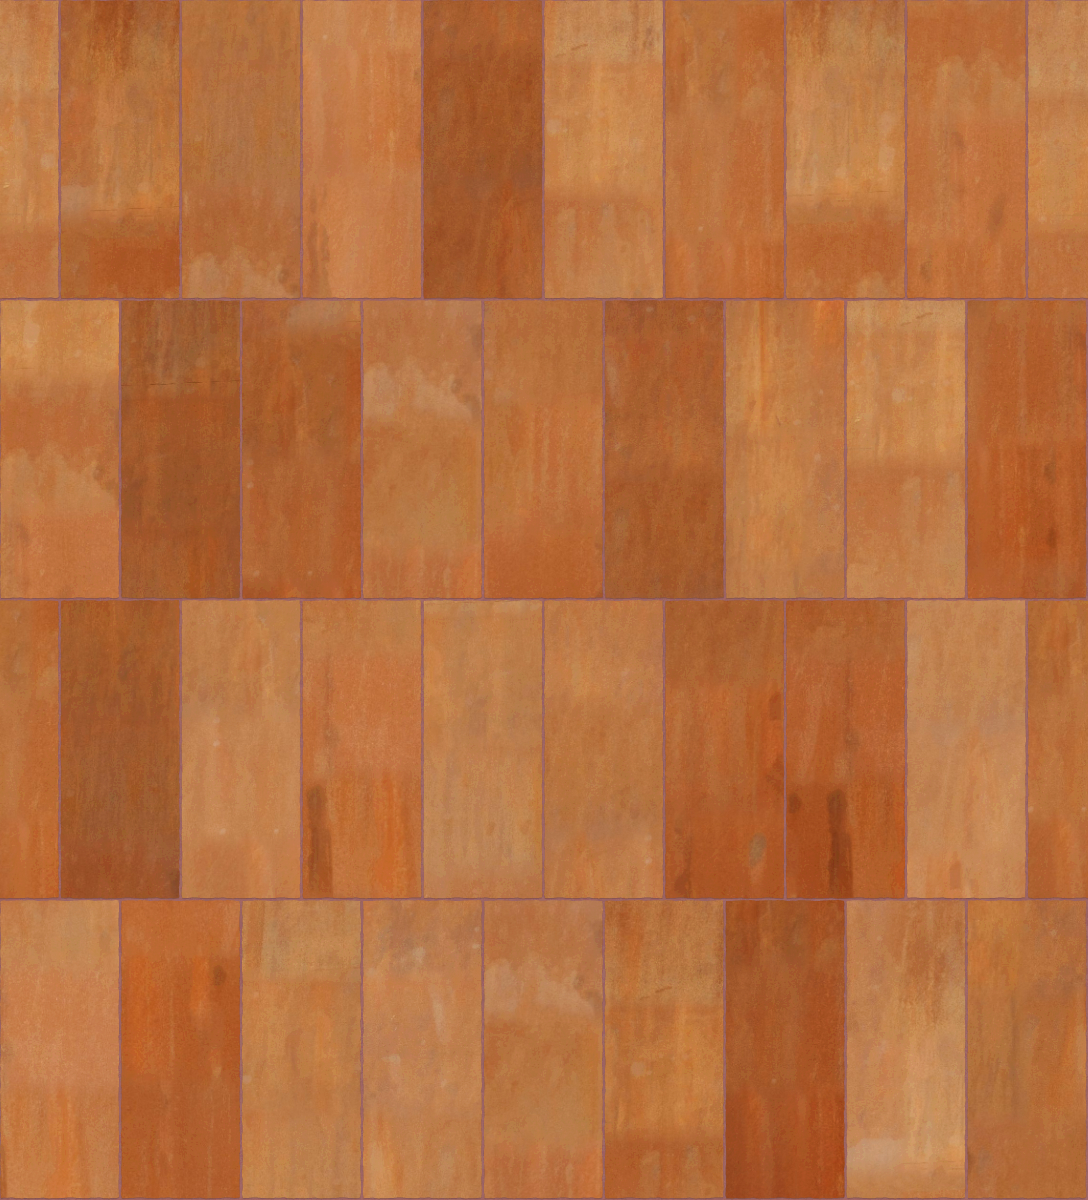 A seamless metal texture with corten steel a sheets arranged in a stretcher pattern